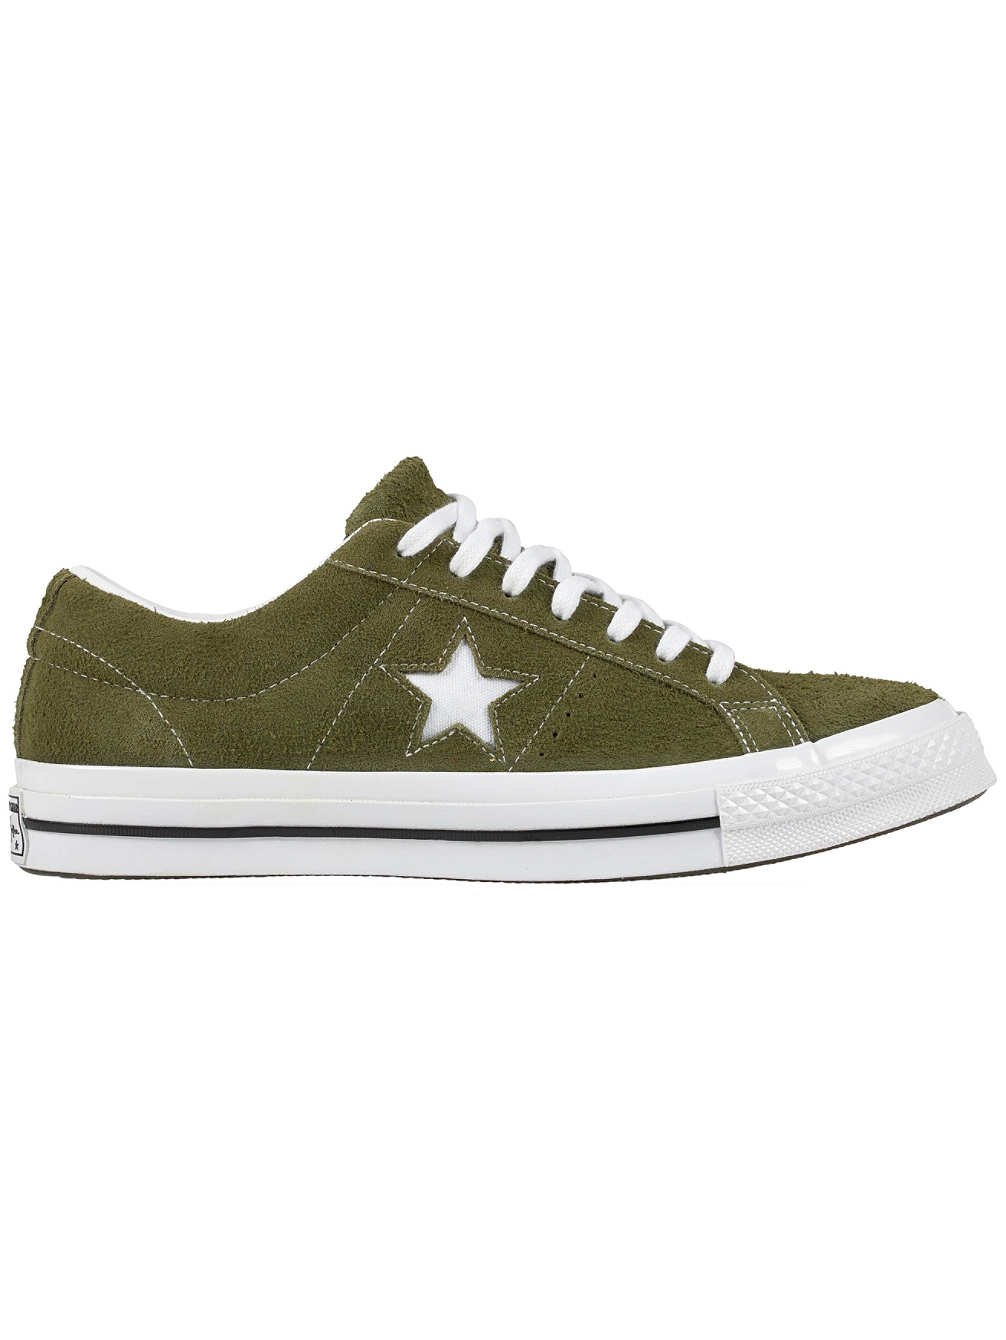 Converse Mens One Star Ox Suede Low Top Casual Shoes Green 10 Medium (D)